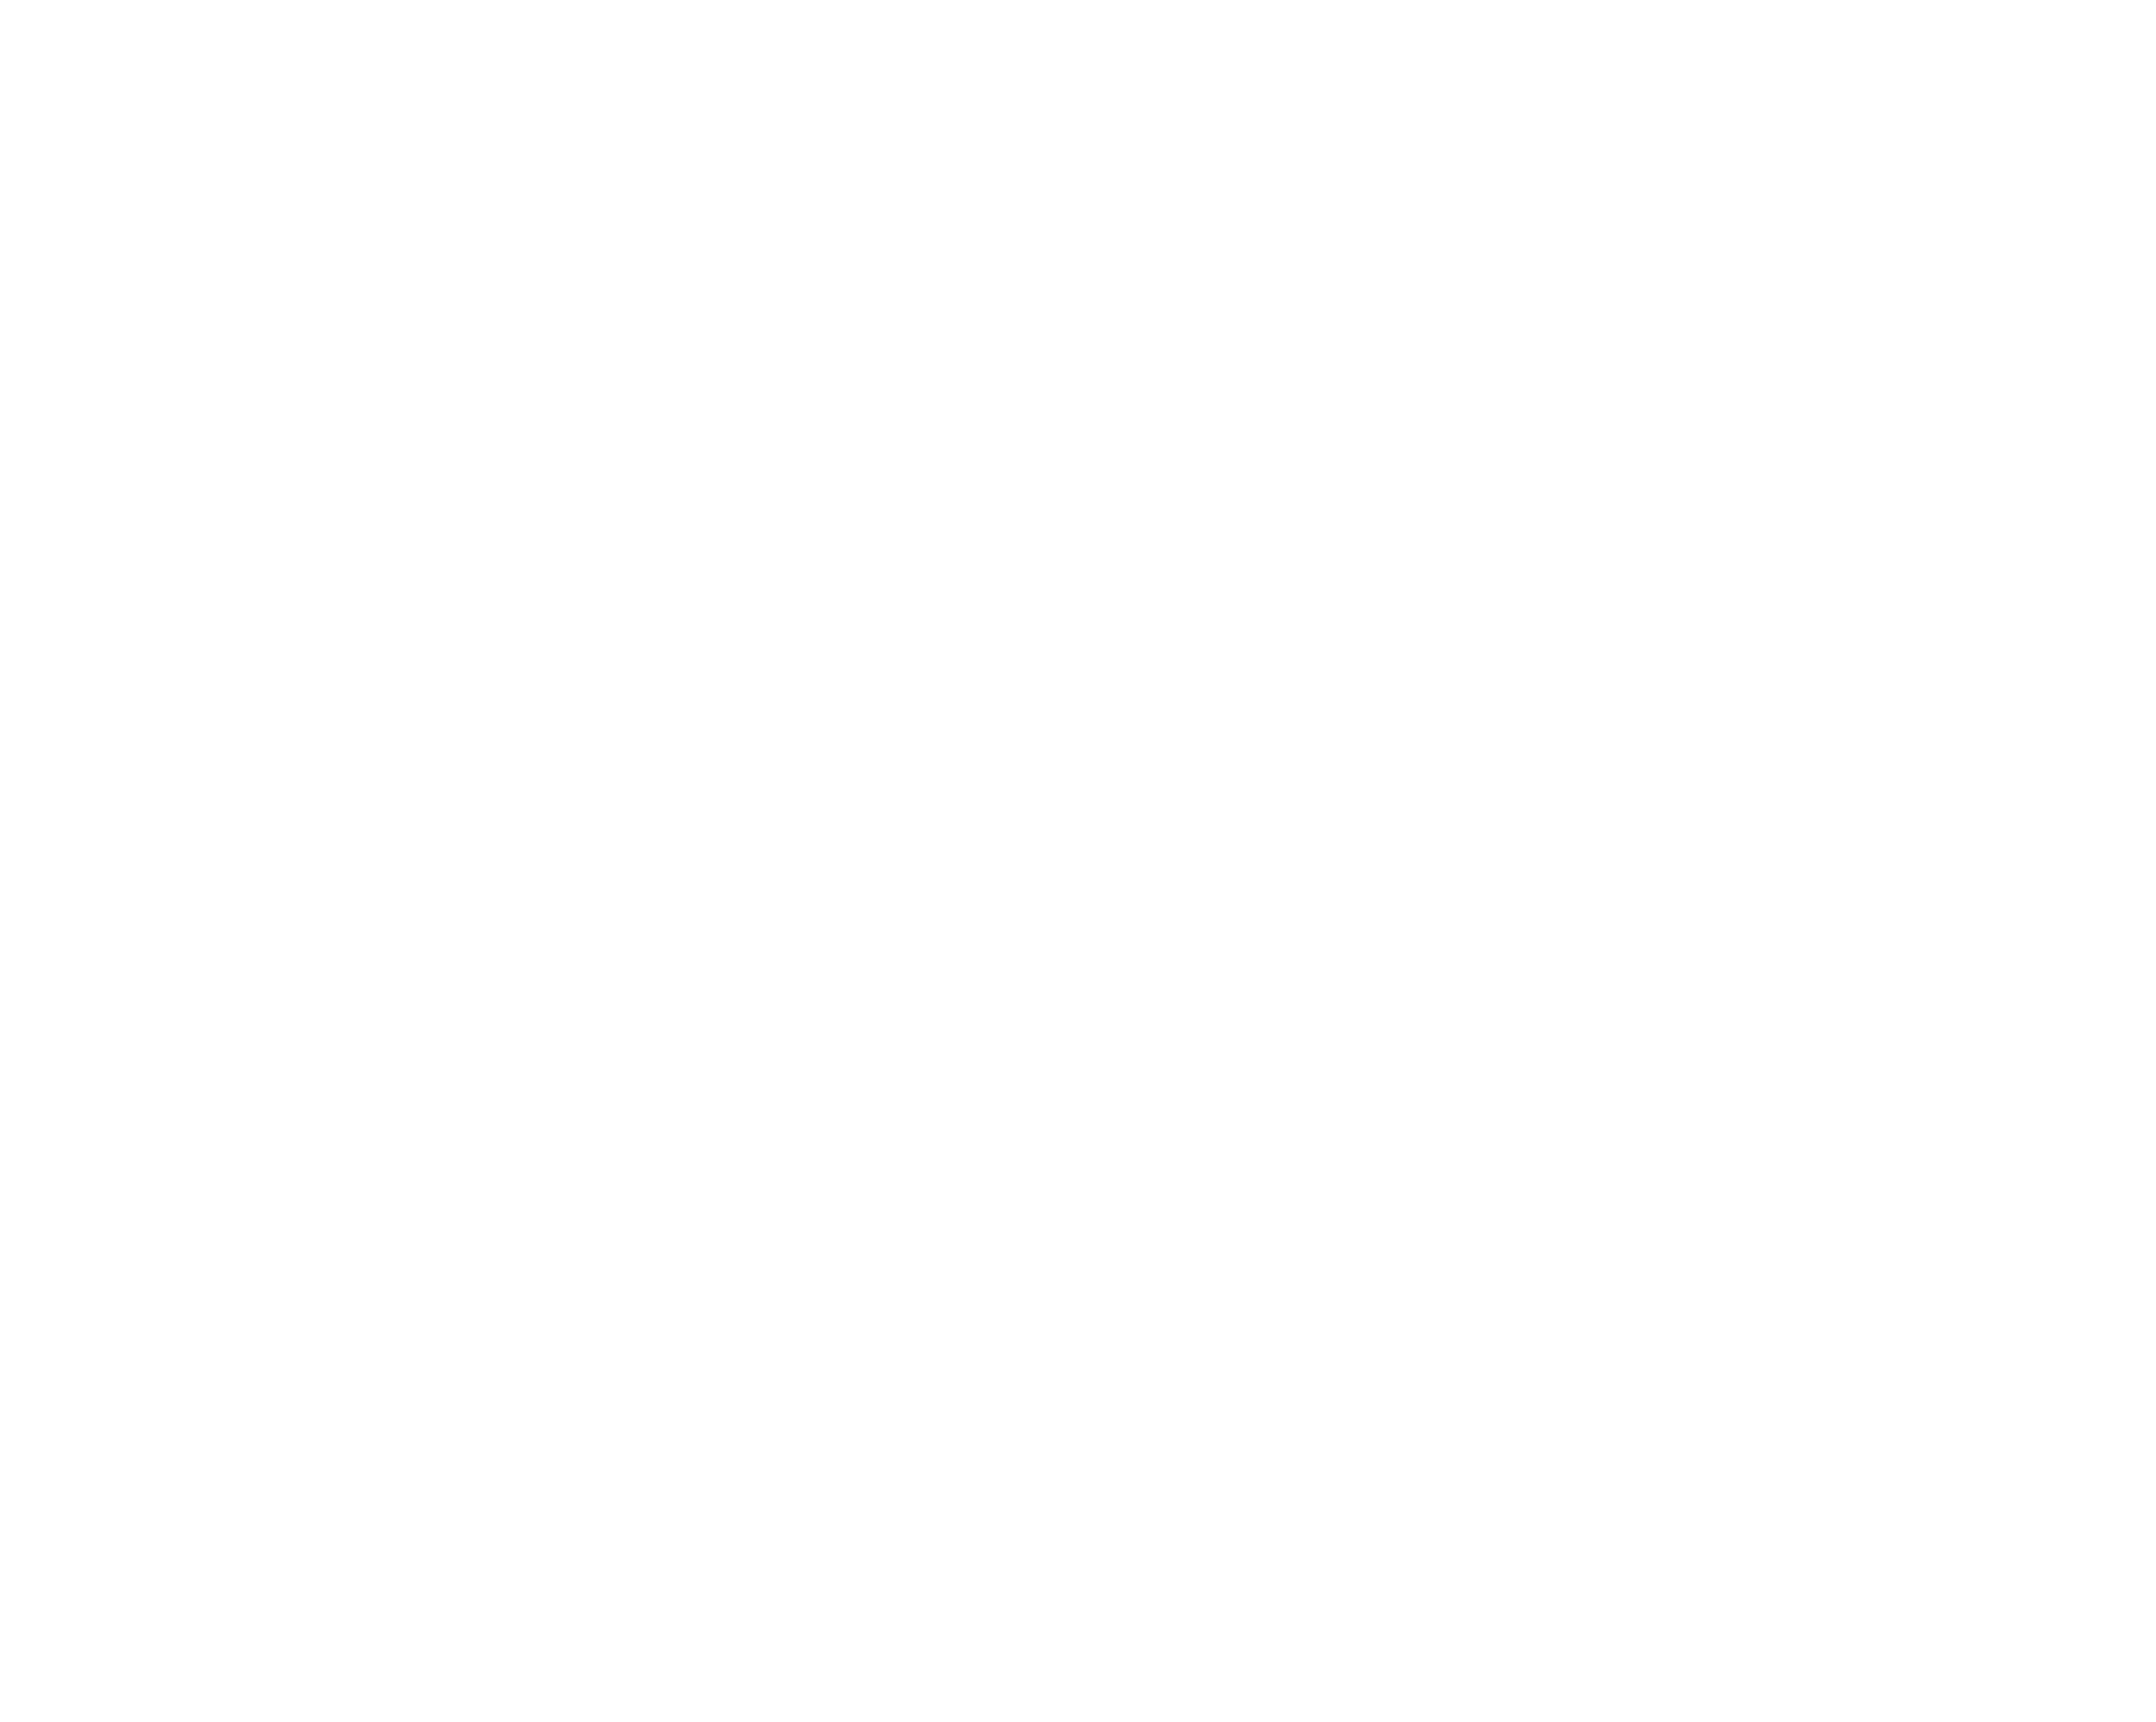 The Lutheran World Federation